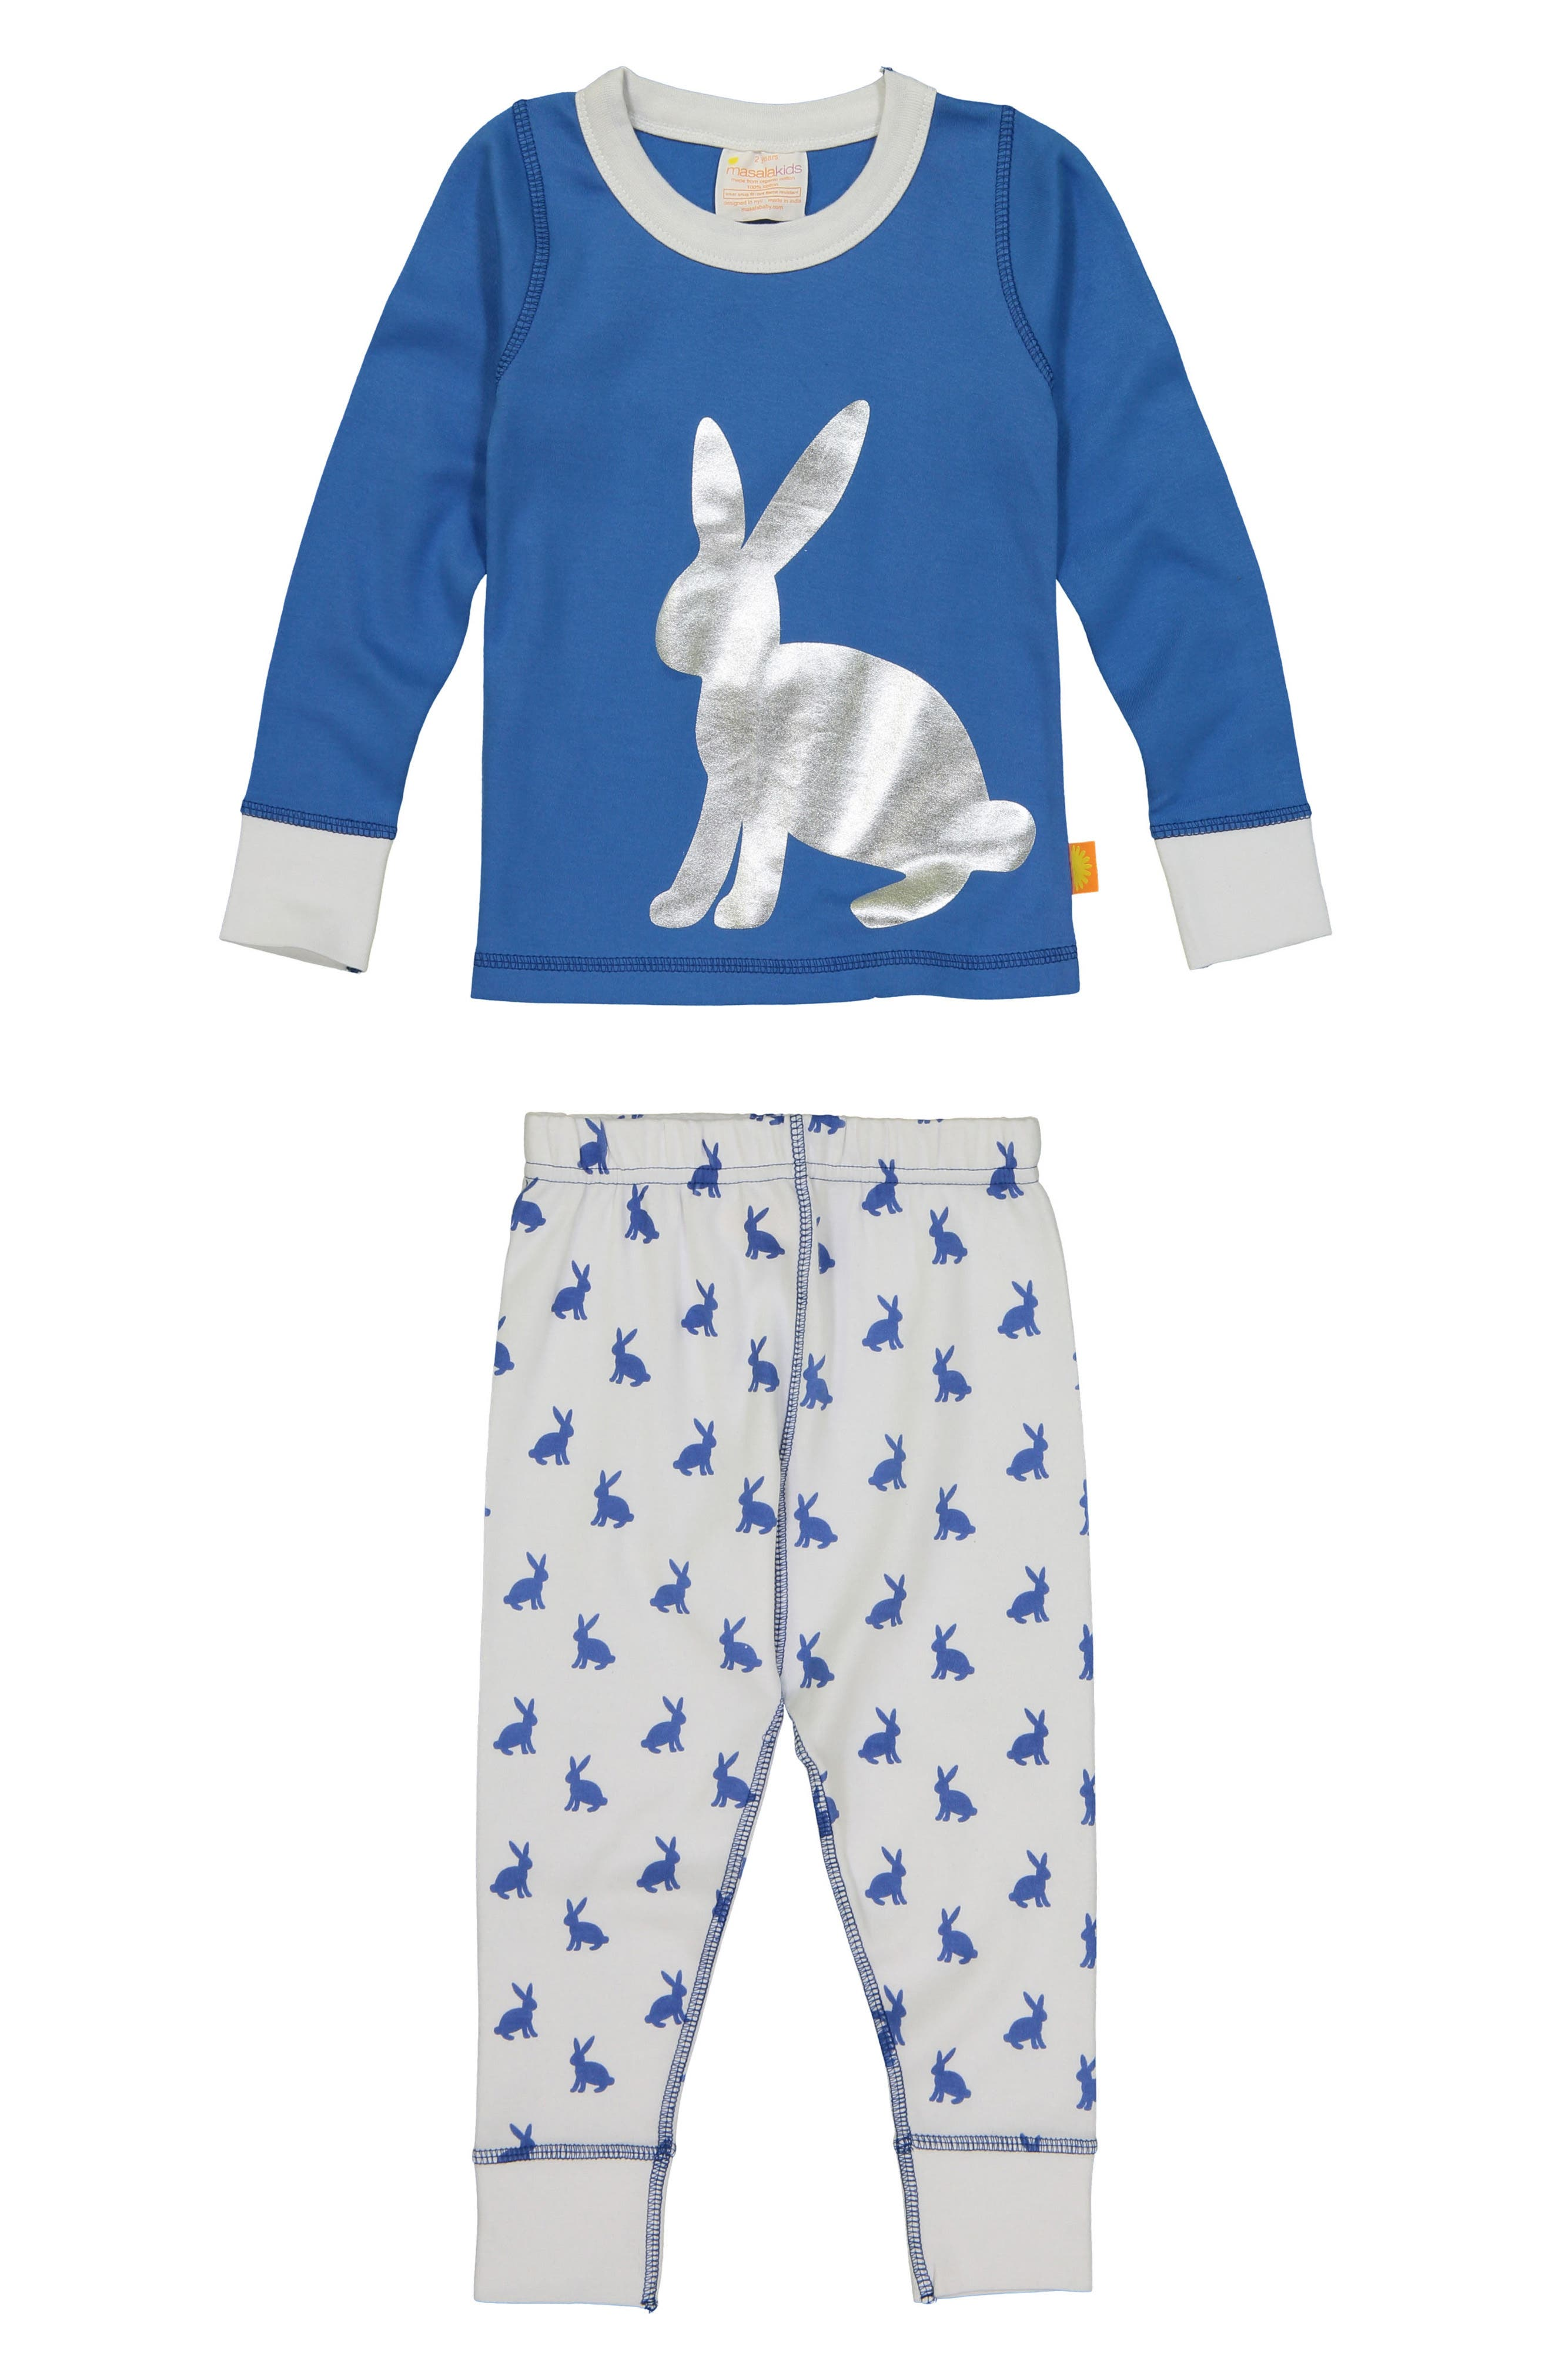 Bunny Hop Fitted Two-Piece Pajamas,                         Main,                         color, 400